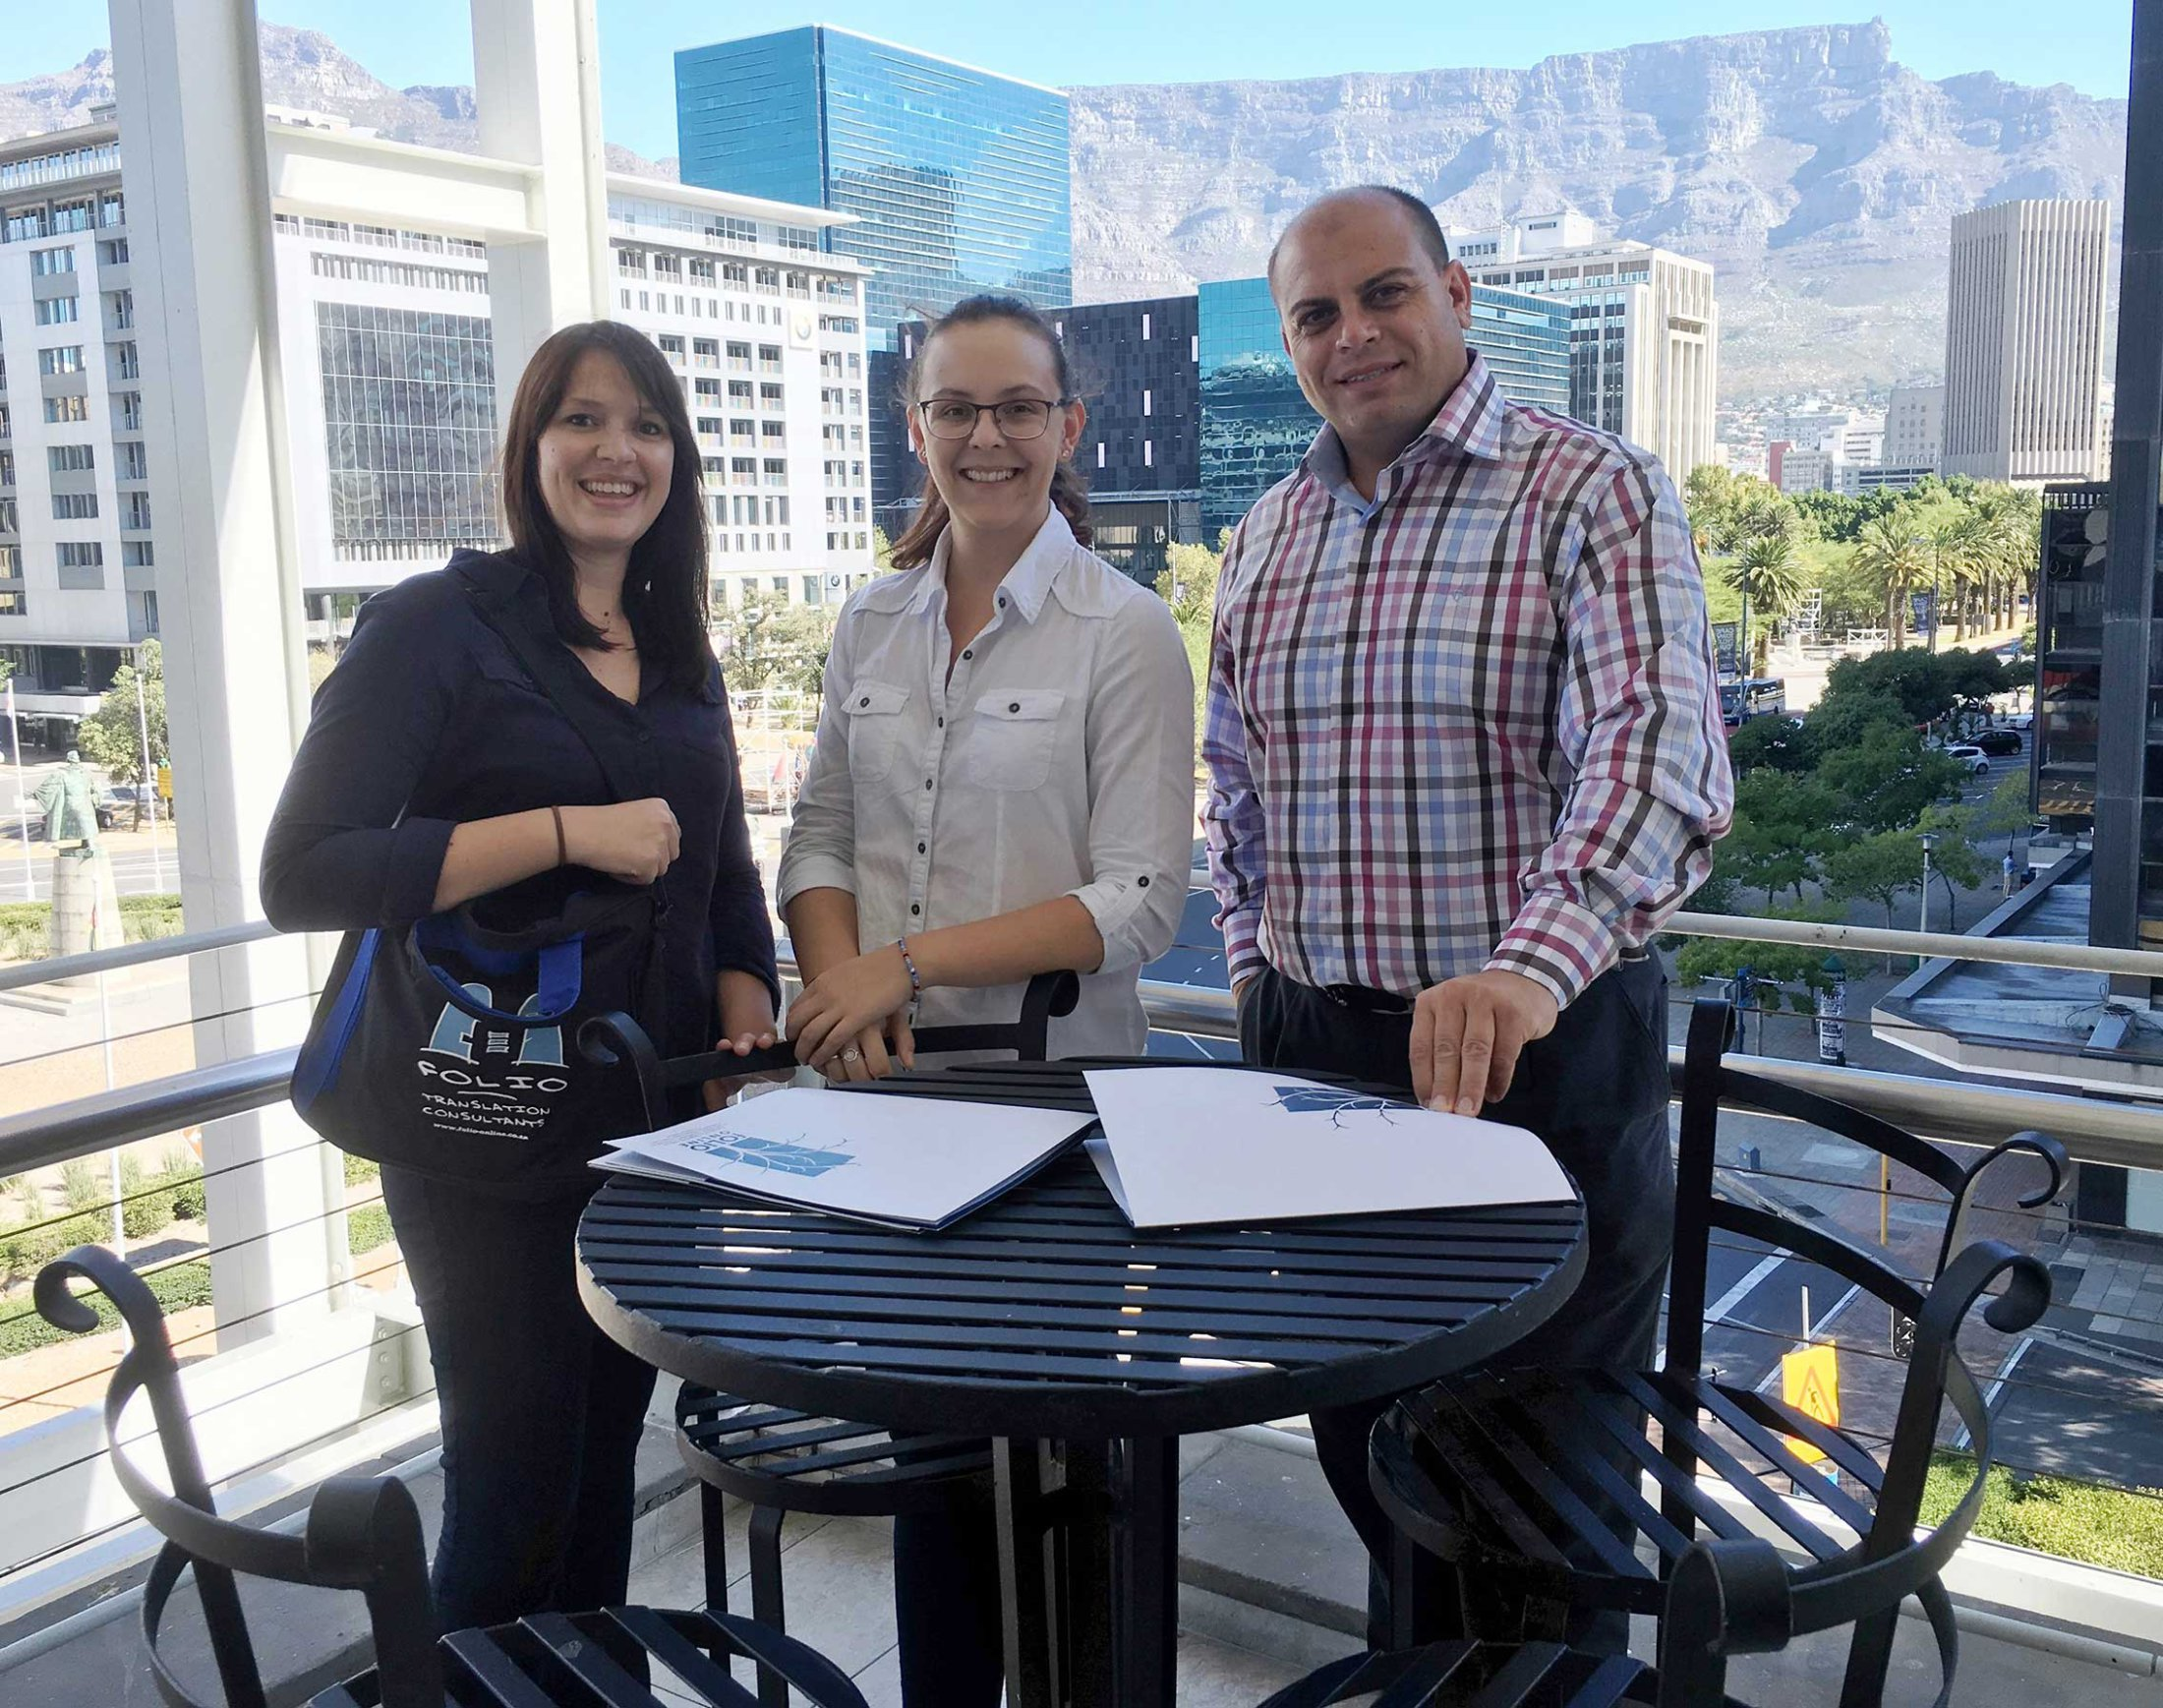 Lauri King, Caro van Aardt & Jacques Fourie, General Manager IVTM at The Cape Town International Convention Centre. 16 March 2016